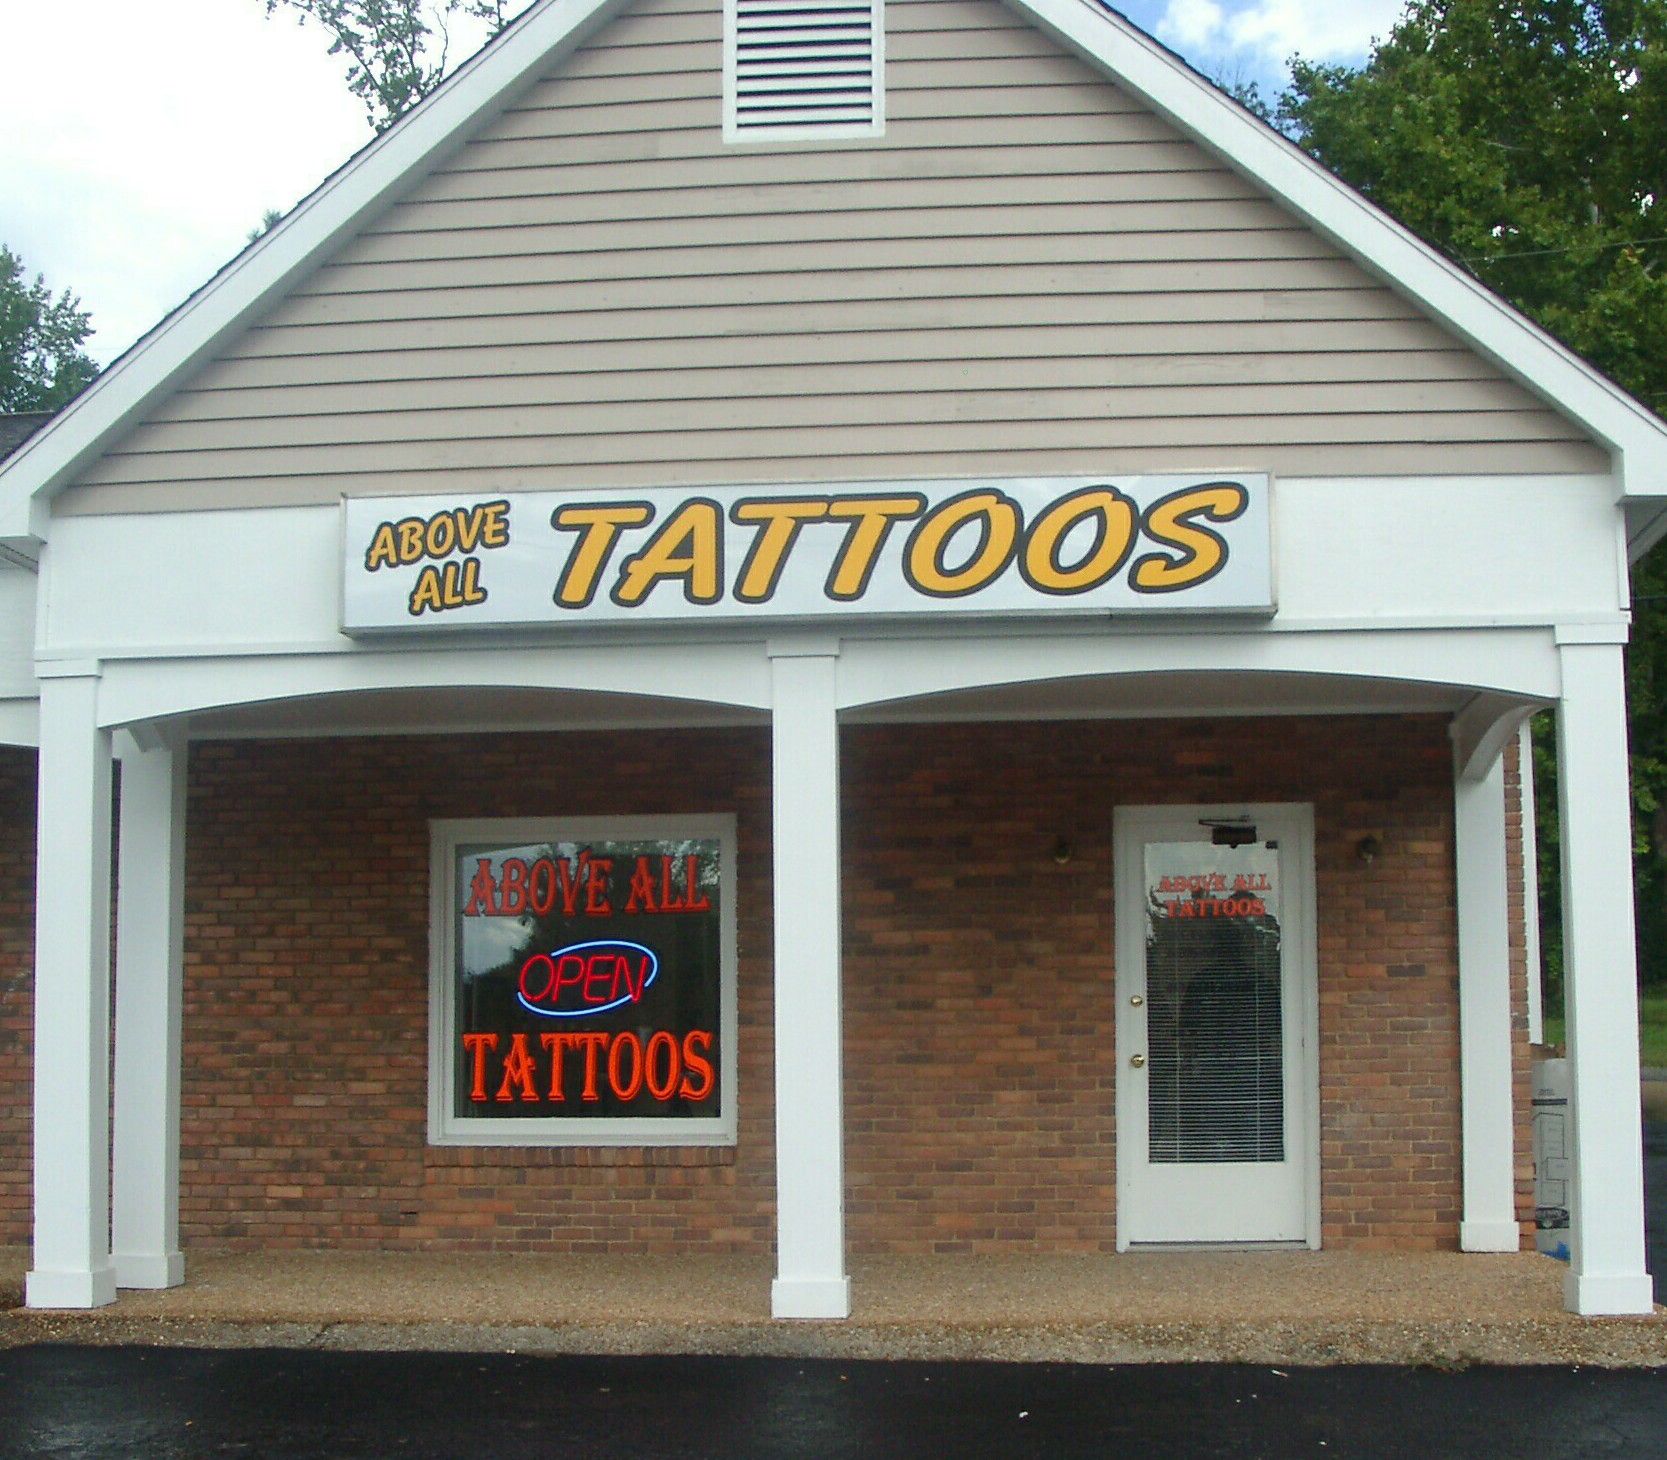 Above All Tattoos image 39